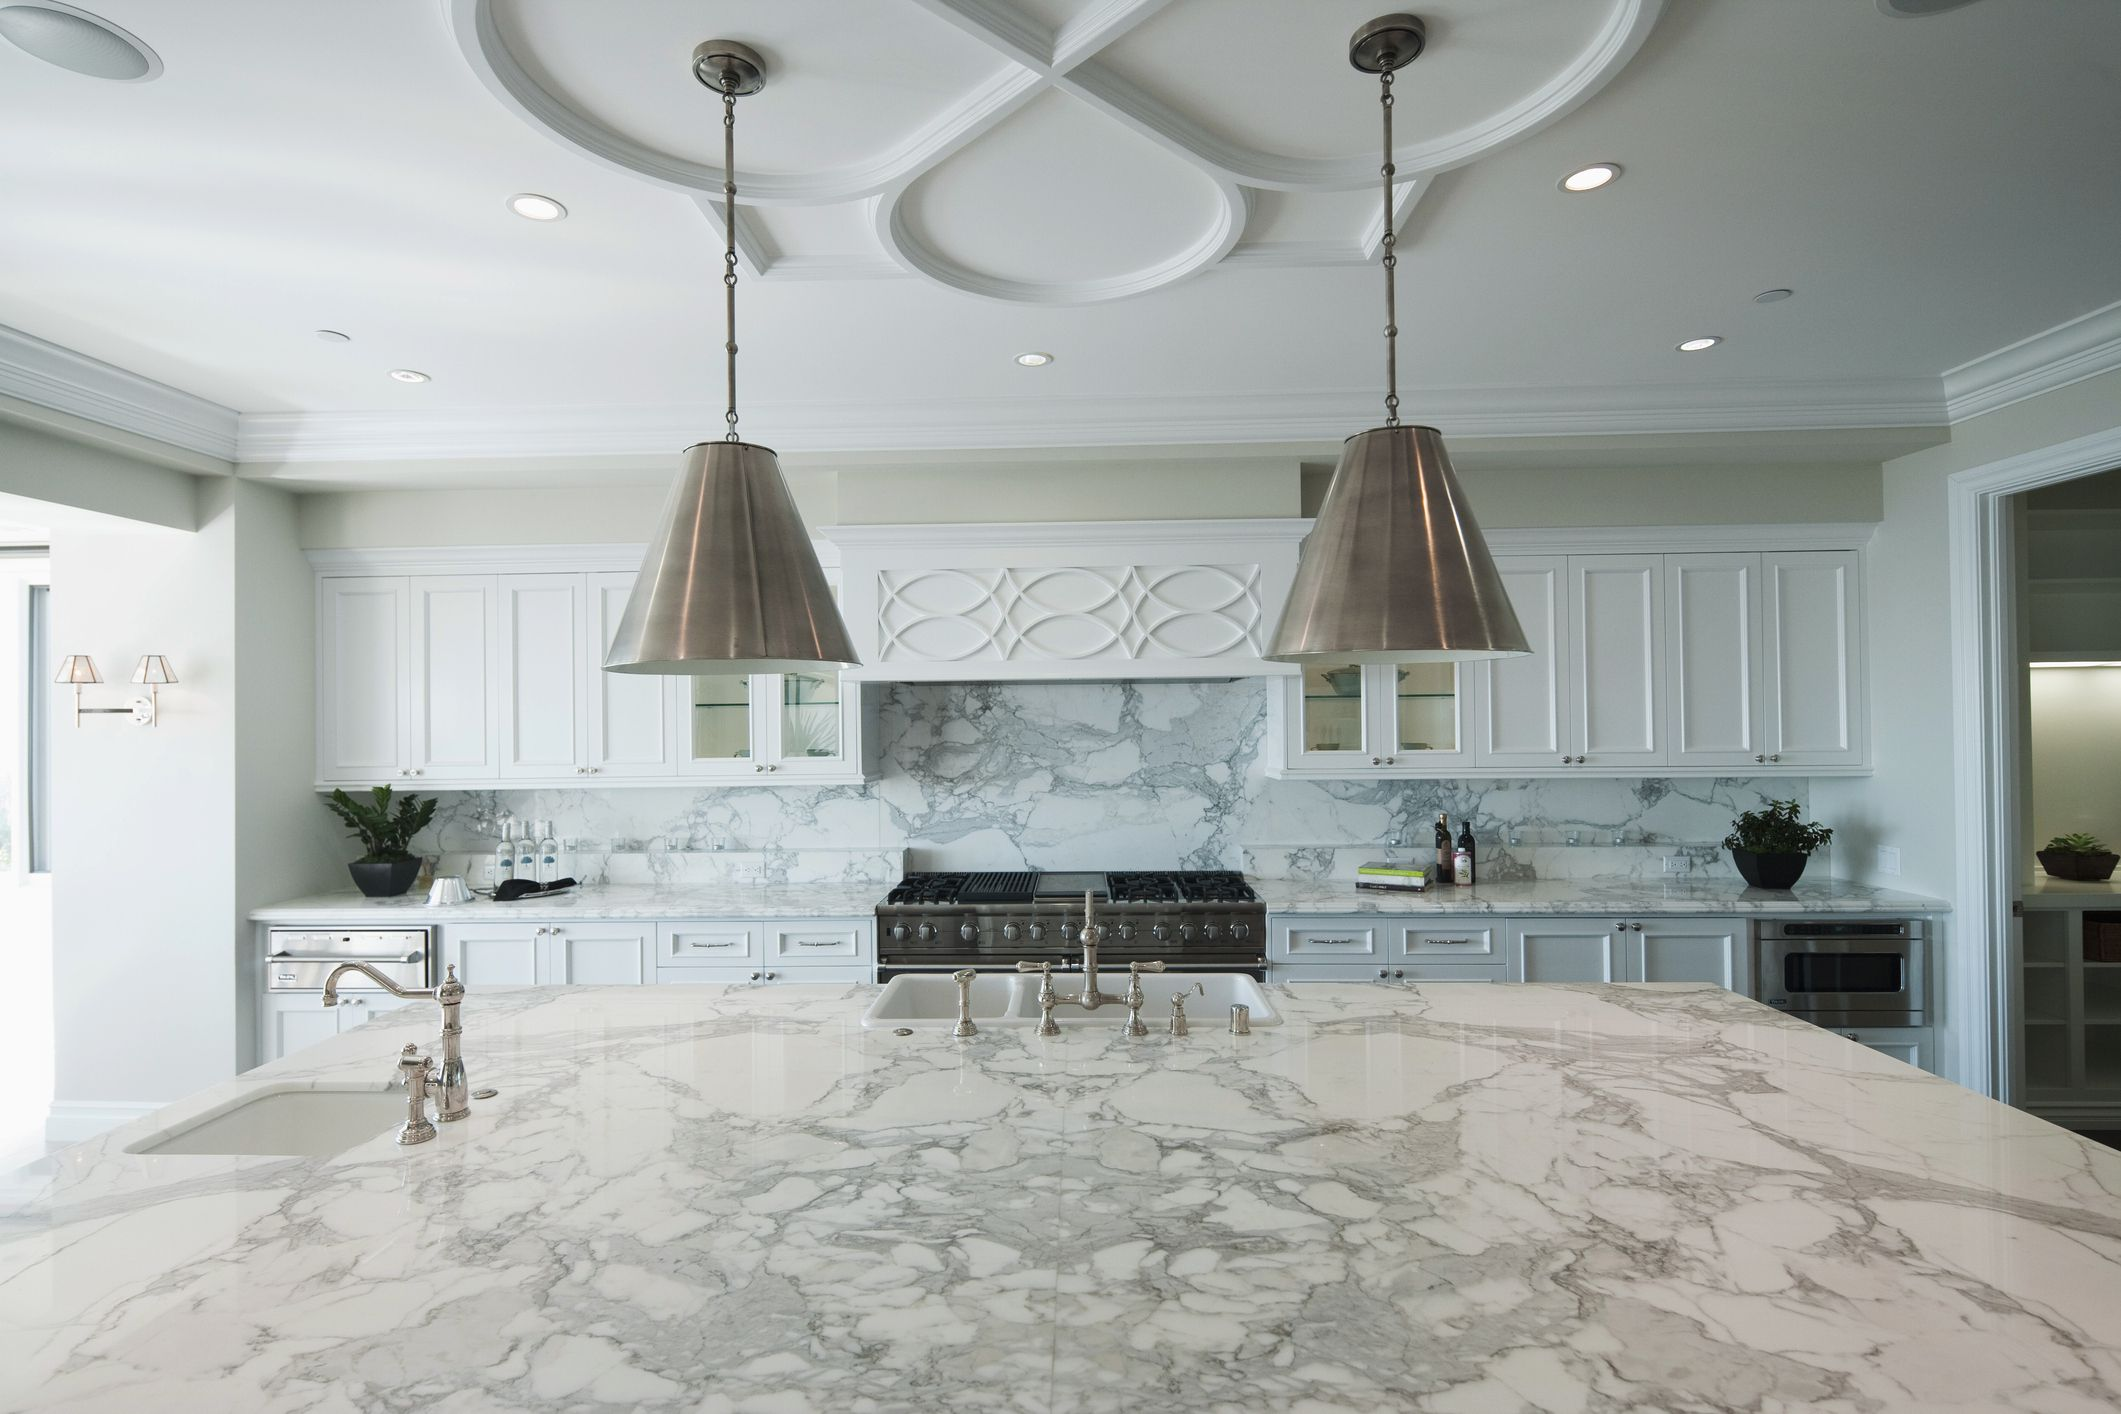 lyra design marble express silestone quartz kitchen ideas granite sample countertop fp lagoon lagoonfp carrara